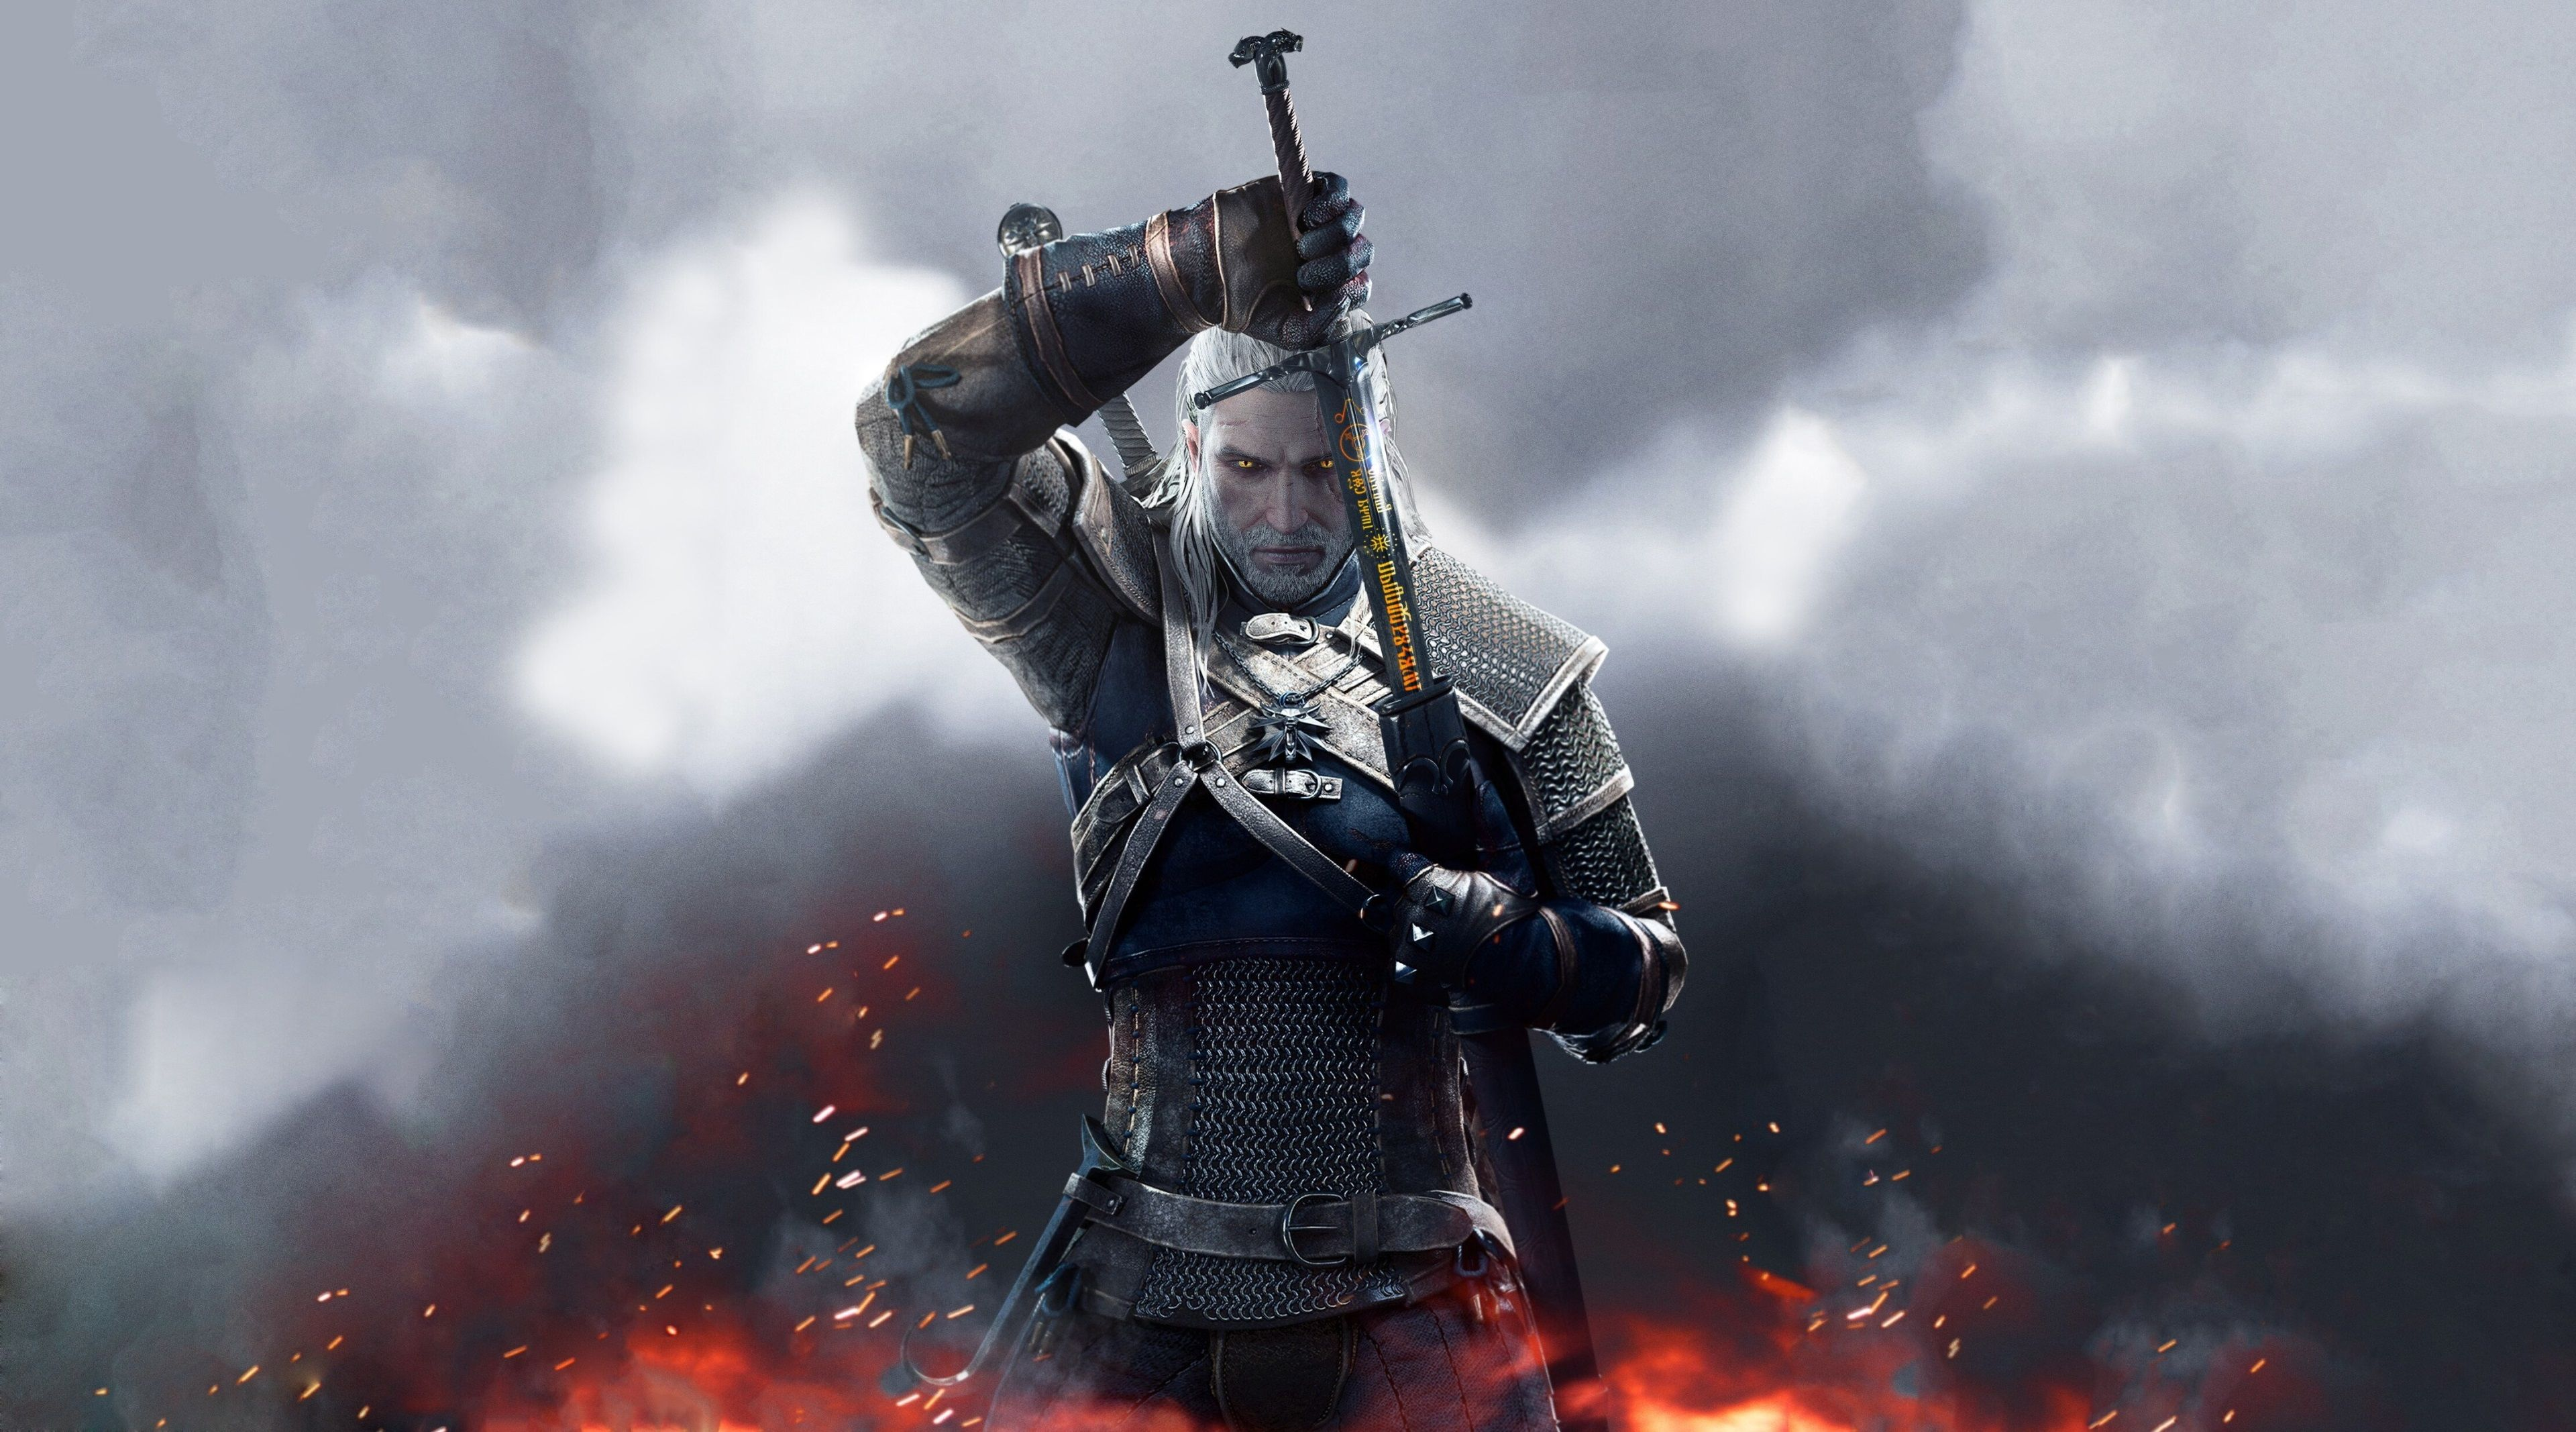 3840x2134 The Witcher 3 Wild Hunt 4k Wallpaper Hd Pack The Witcher Wild Hunt The Witcher 3 Wild Hunt